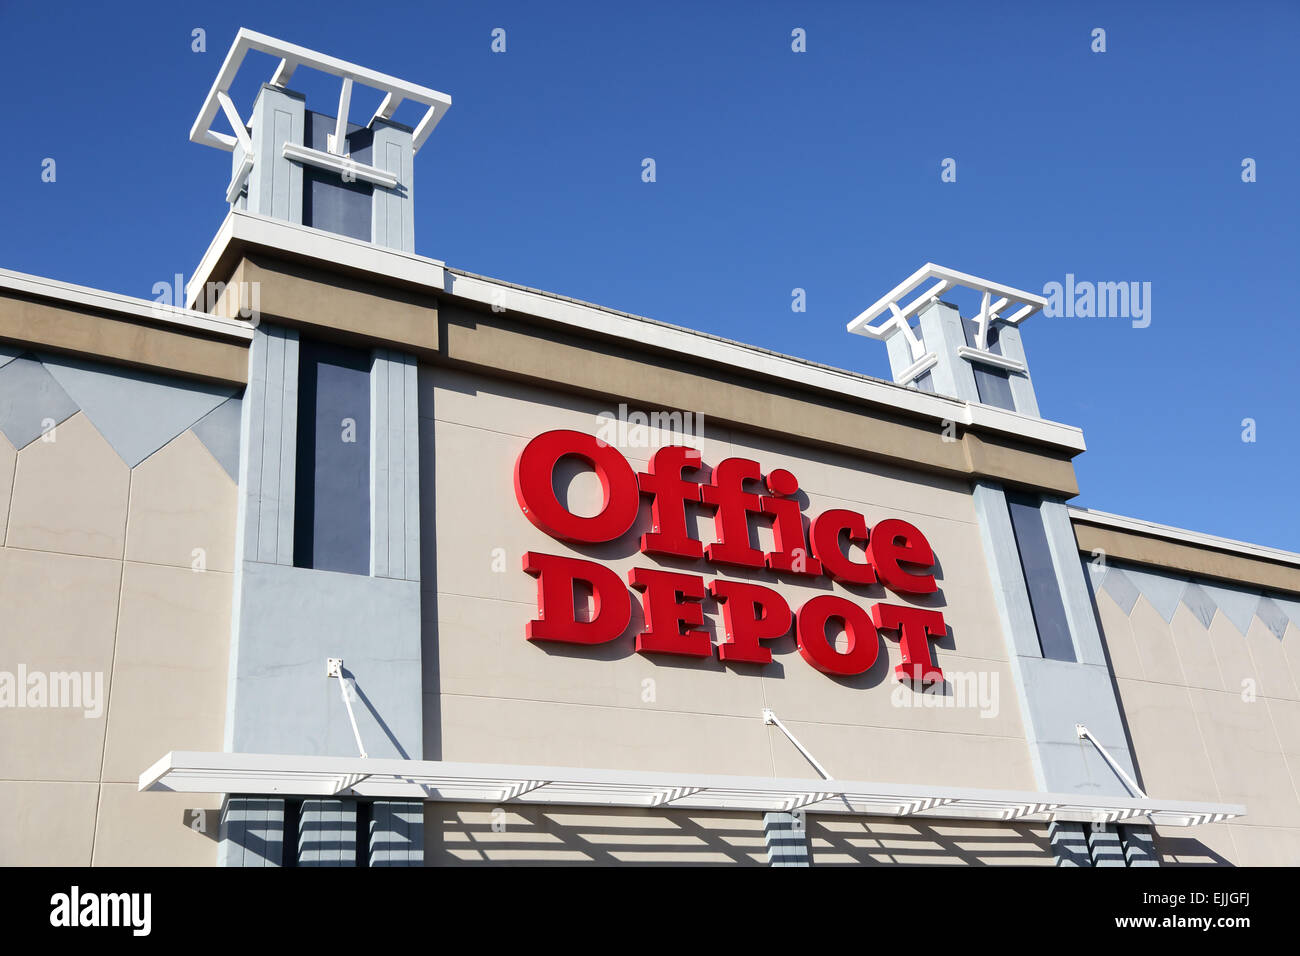 Genial Office Depot, Office Supply Store, Store Front Sign, USA   Stock Image